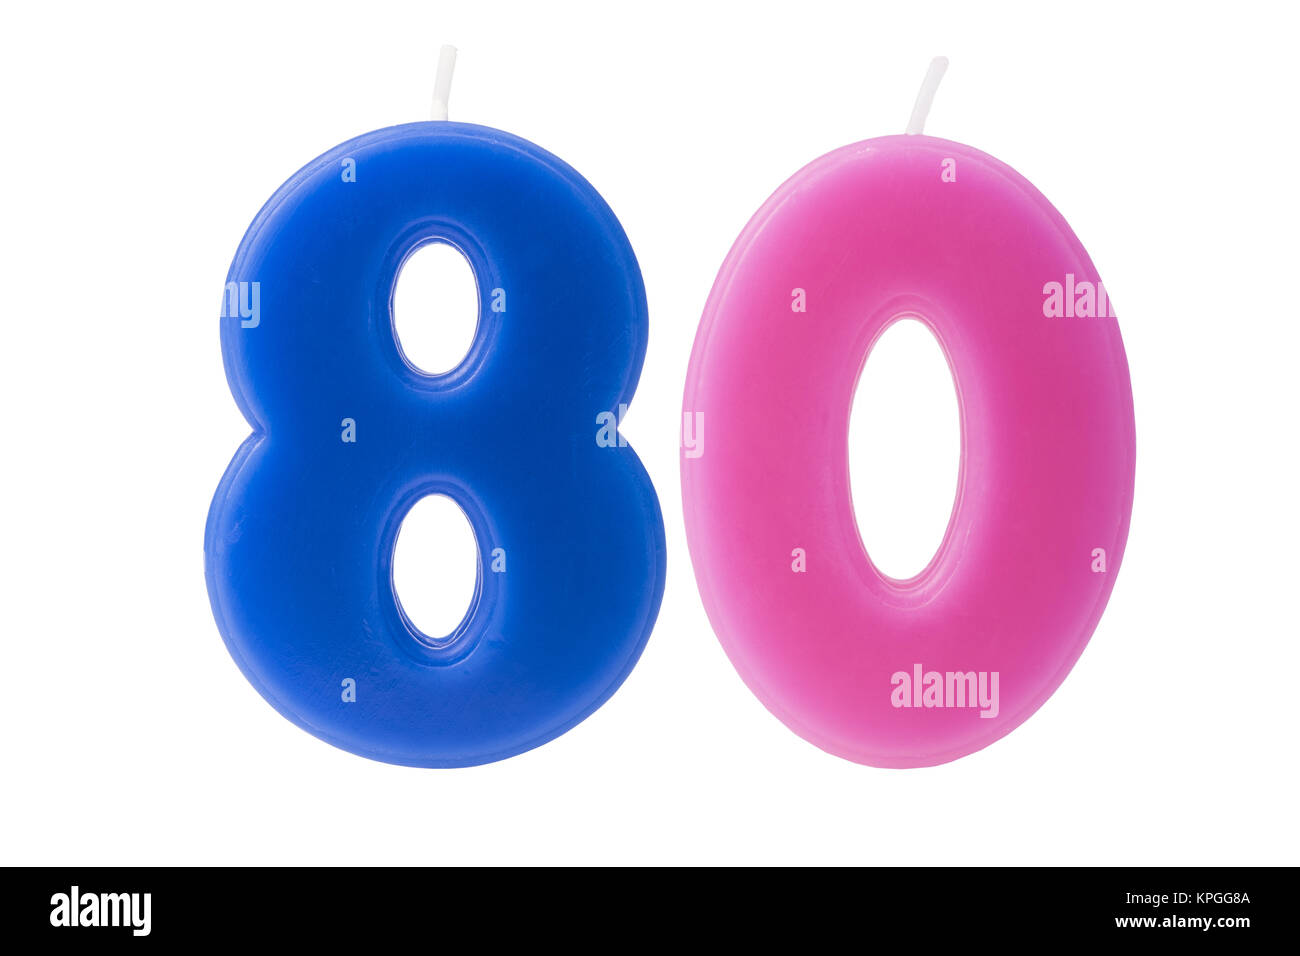 80th birthday candles isolated - Stock Image